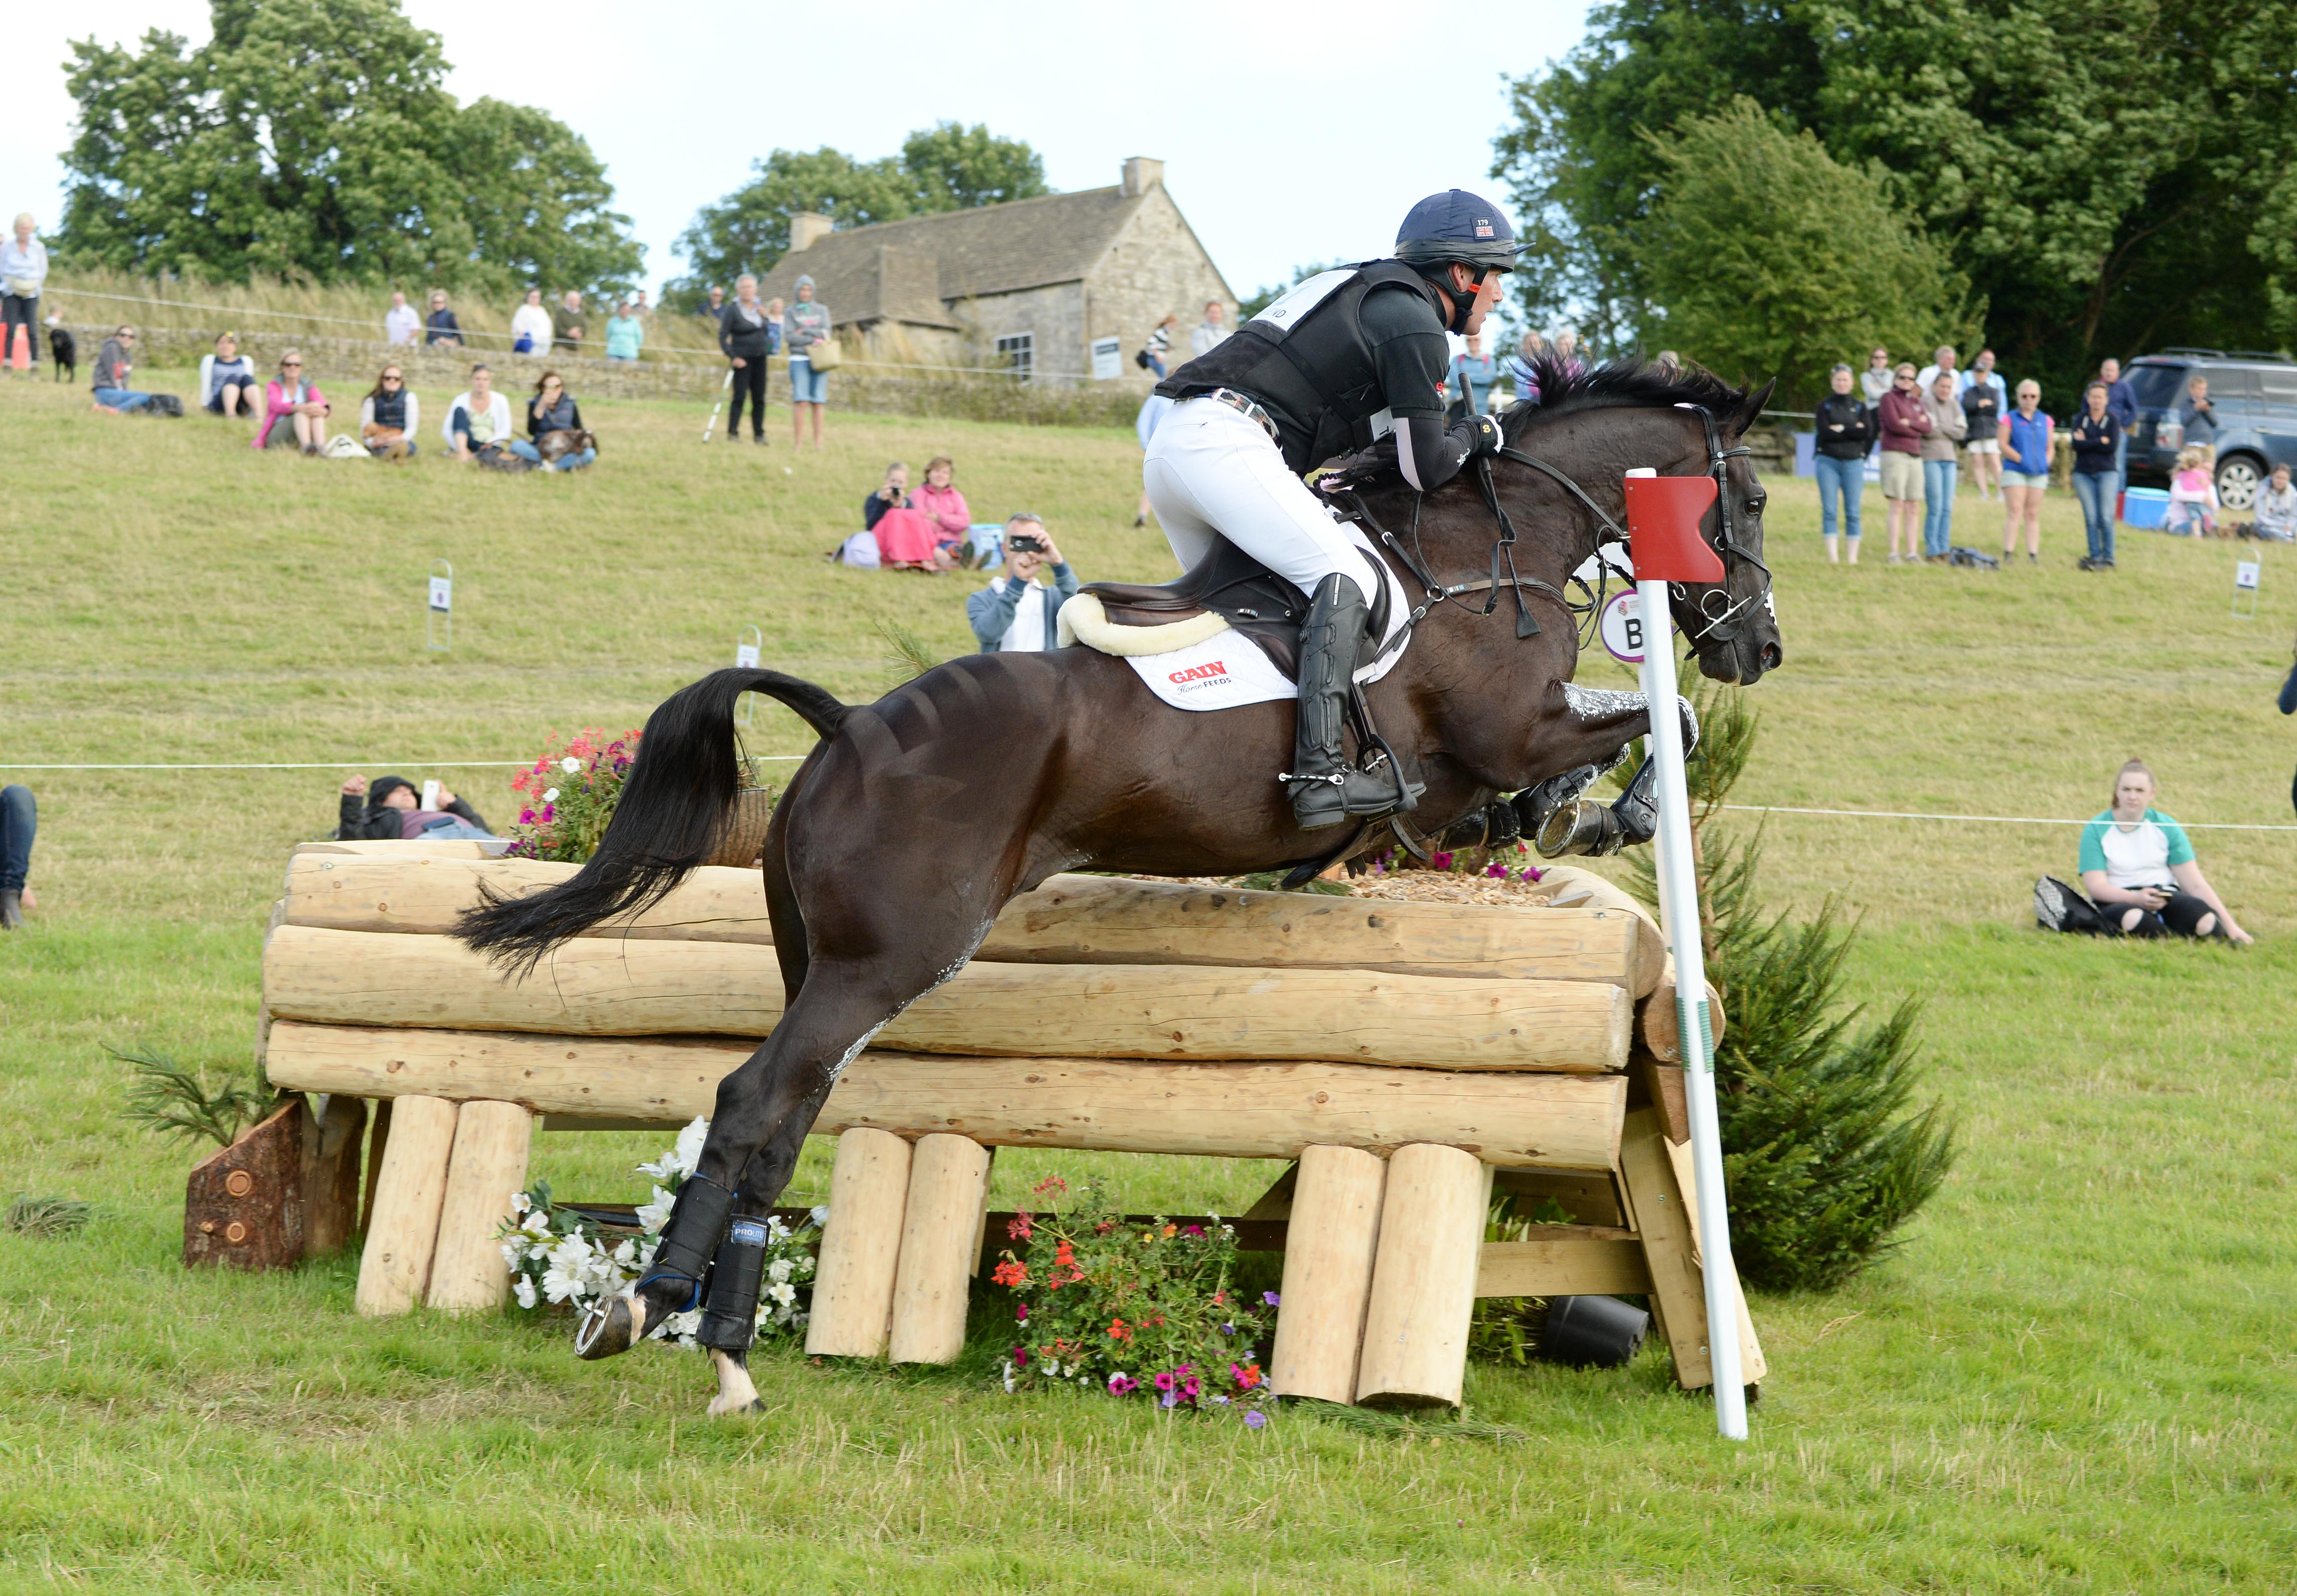 Visit Festival of British Eventing